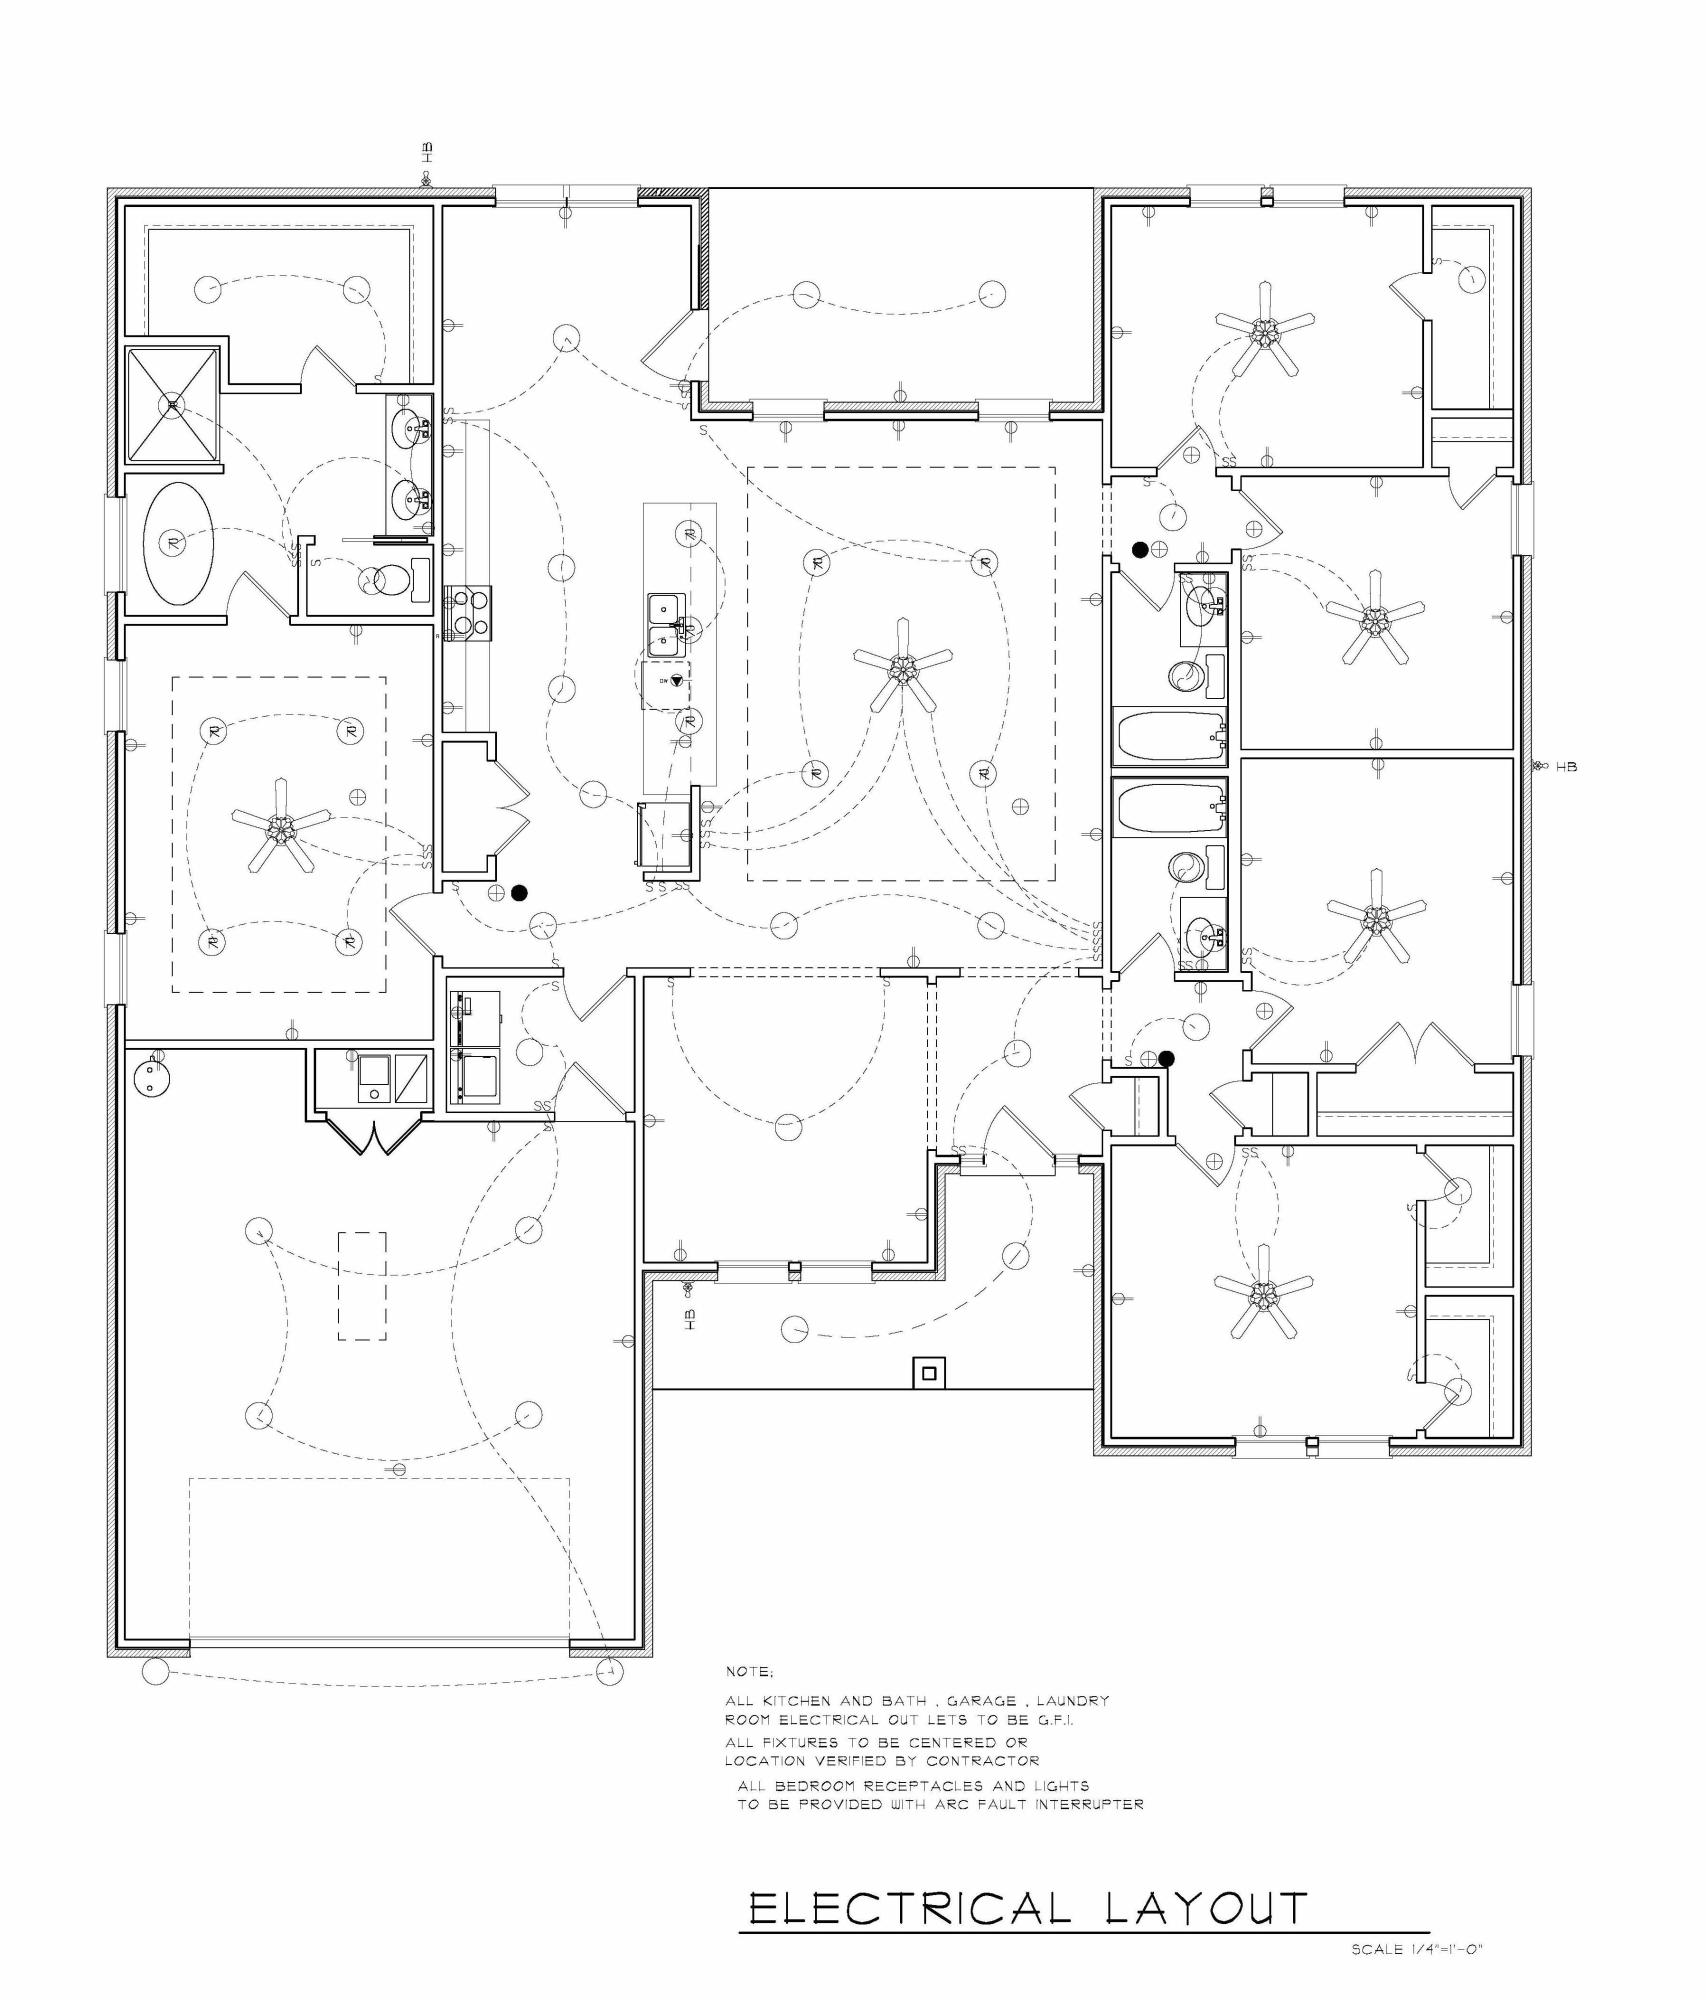 hight resolution of garage electrical layout